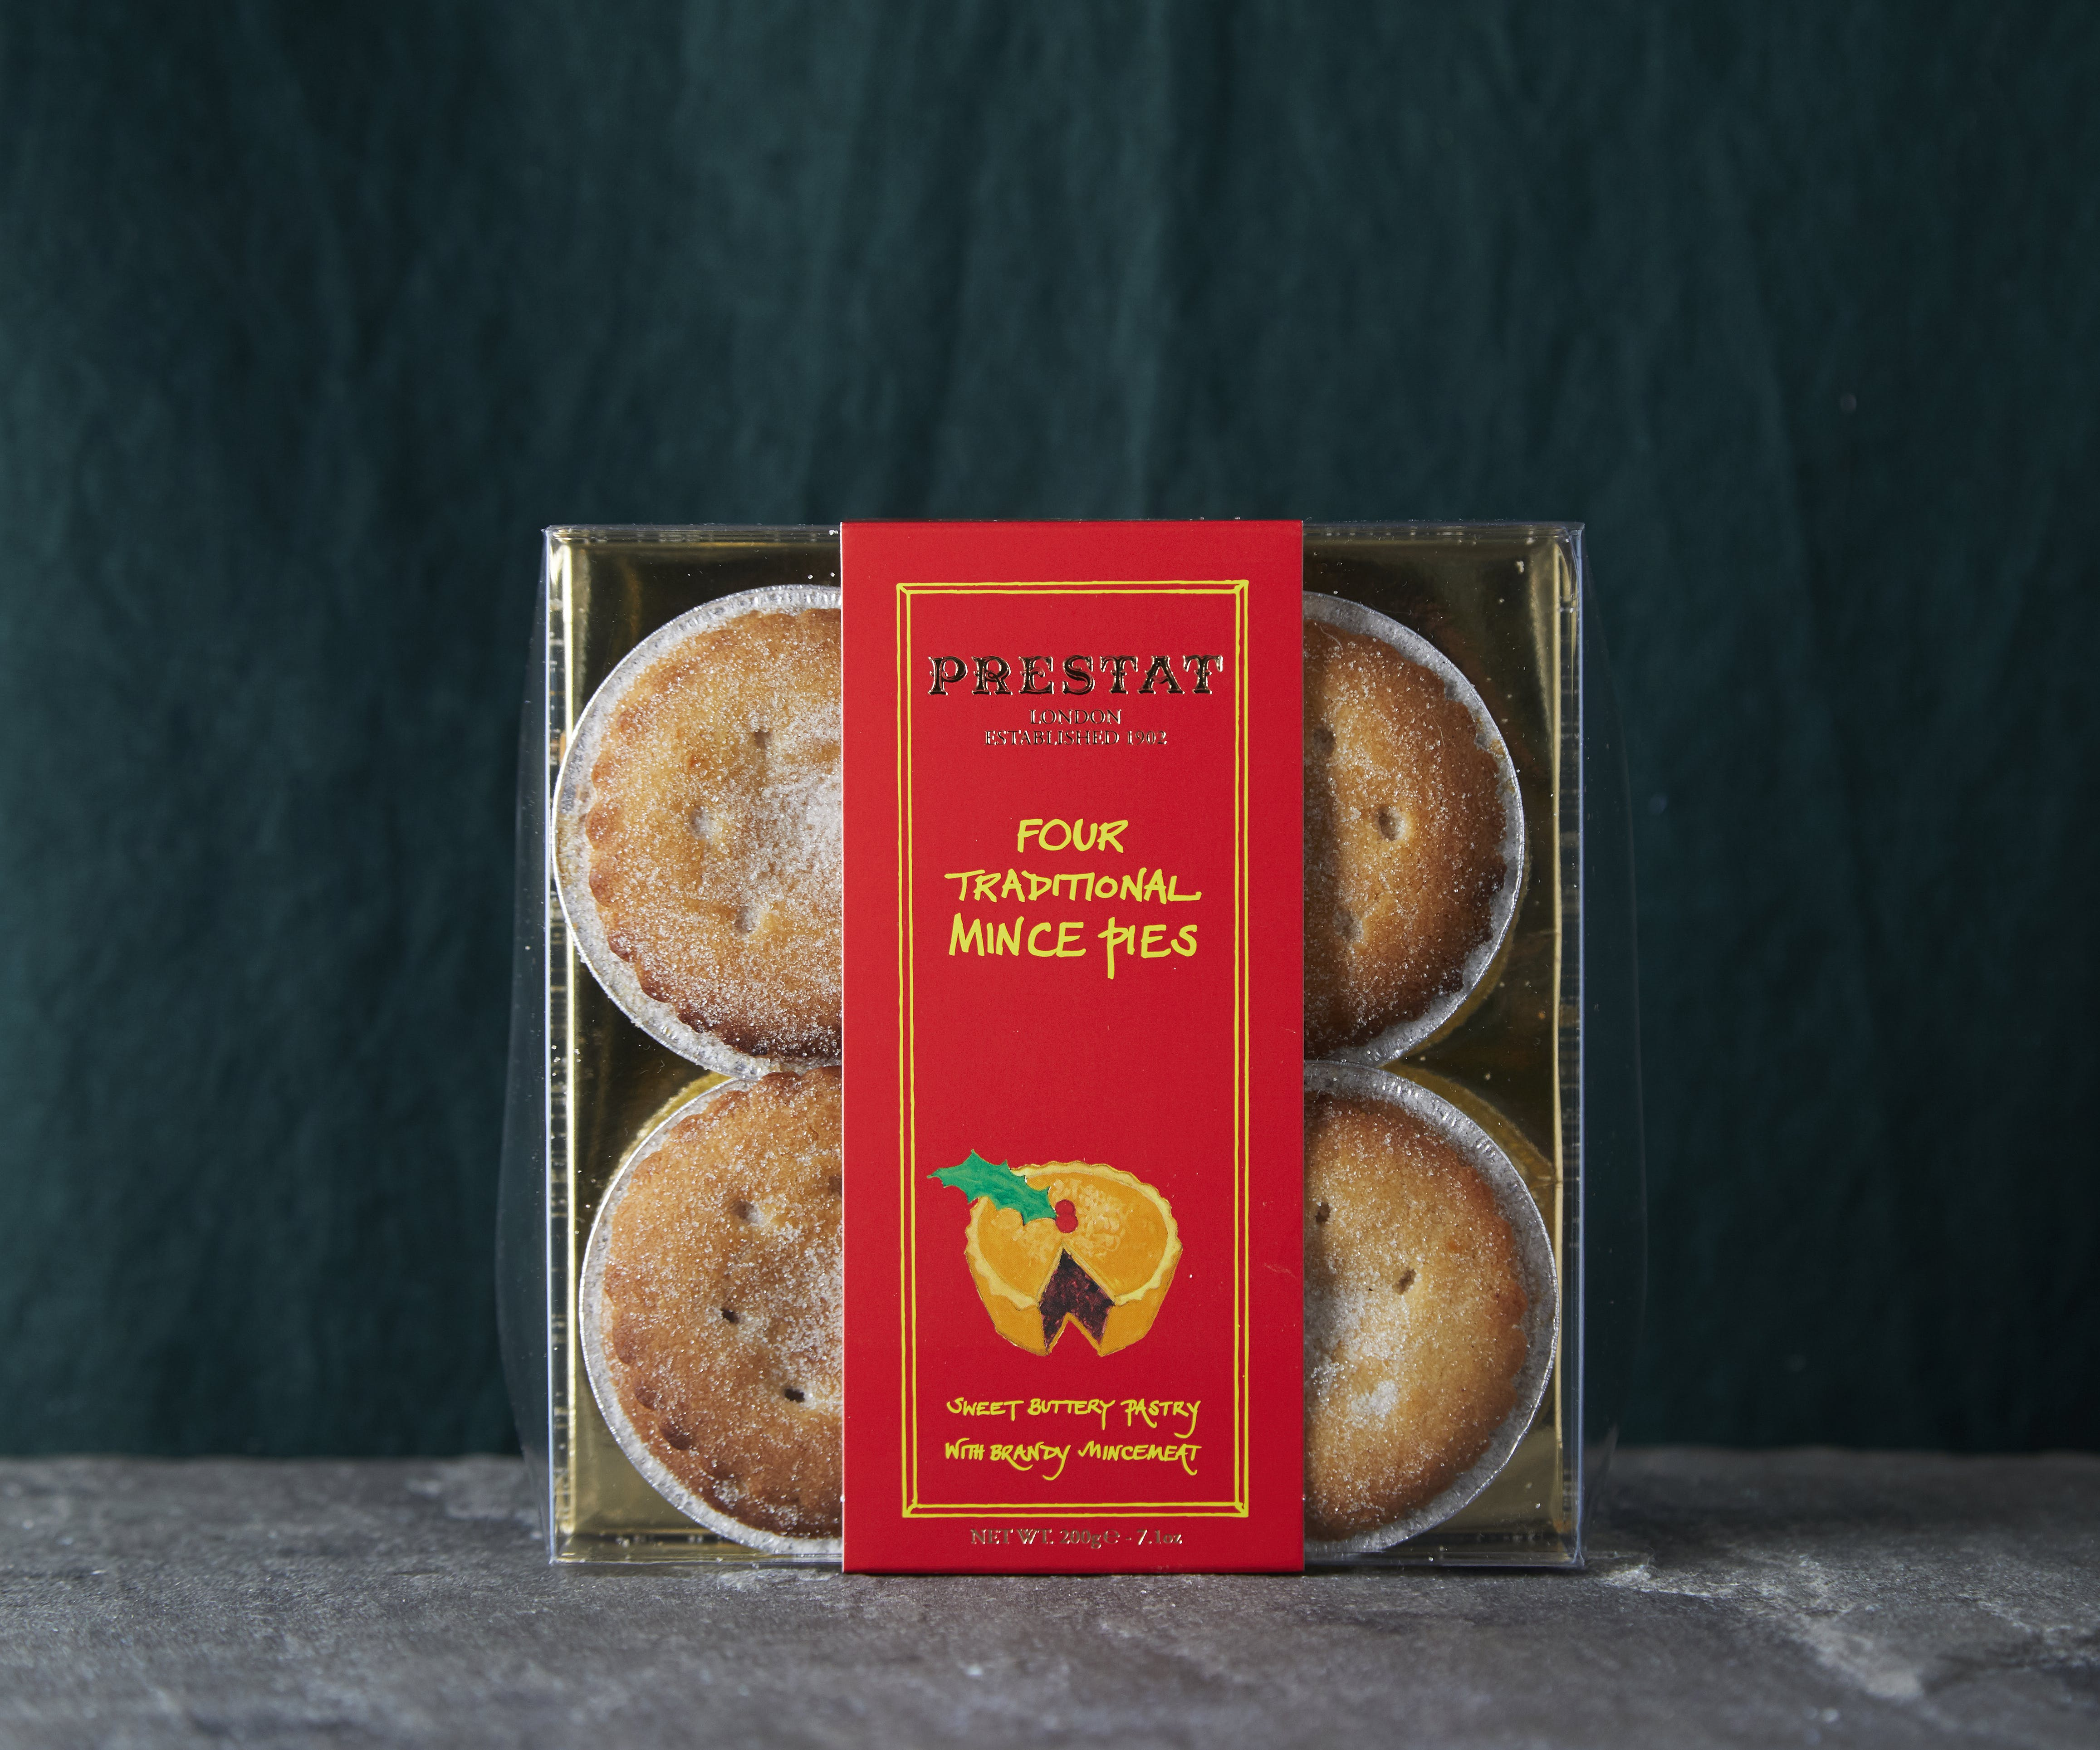 Large Traditional Mince Pies